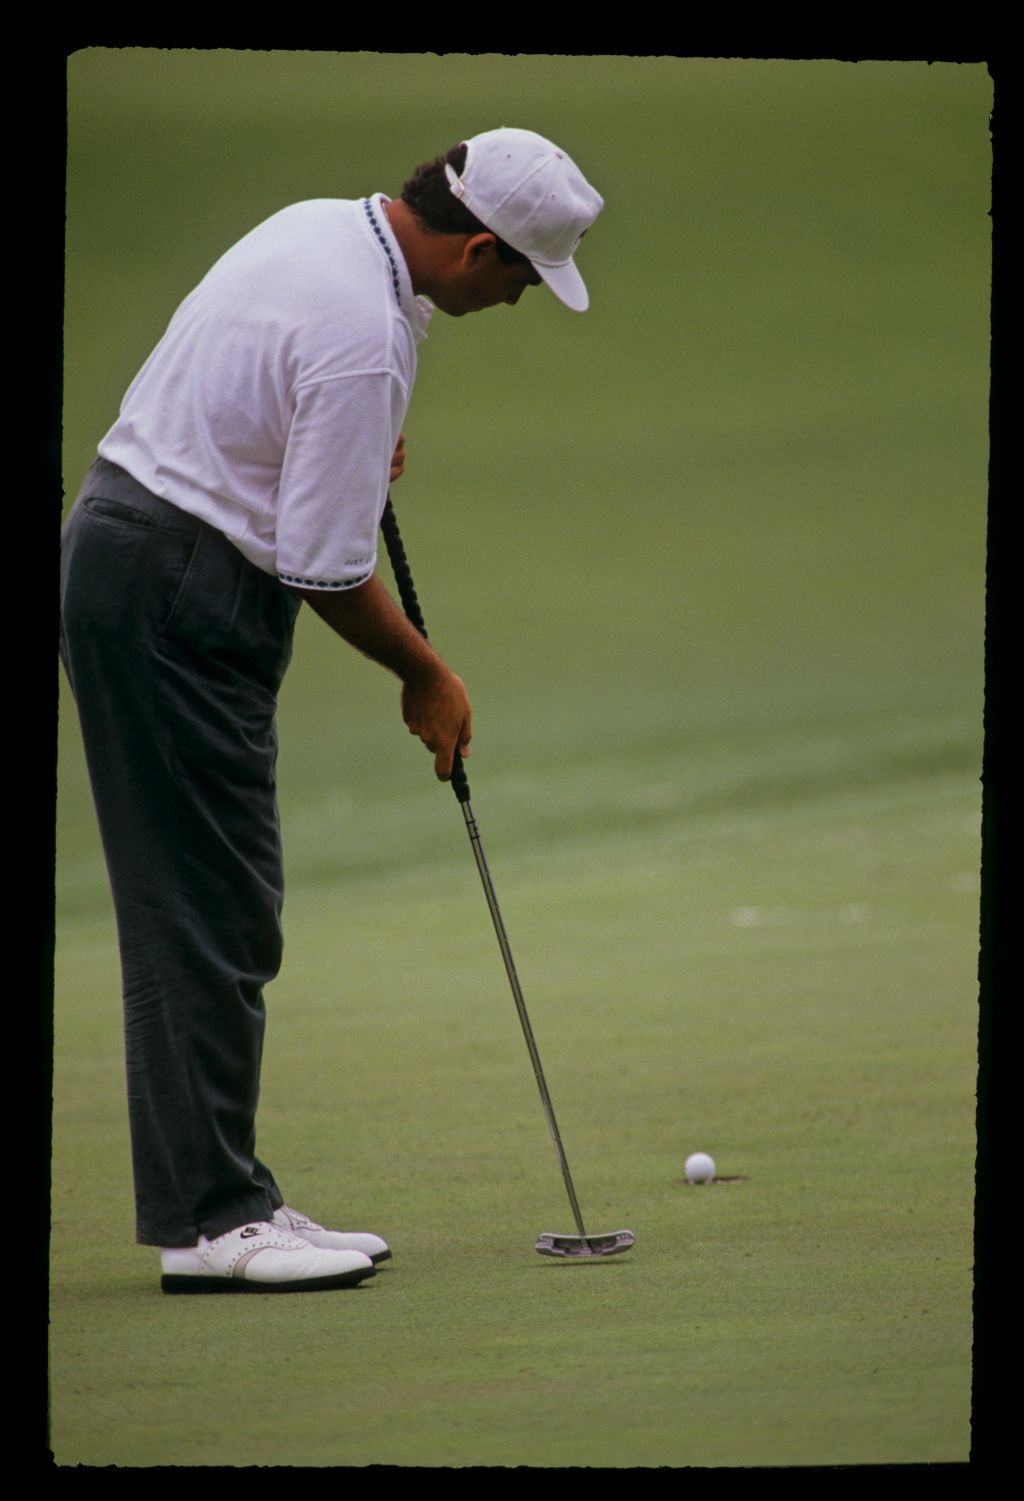 American golfer Rocco Mediate using a broom handled putter to good effect at the 1991 Masters